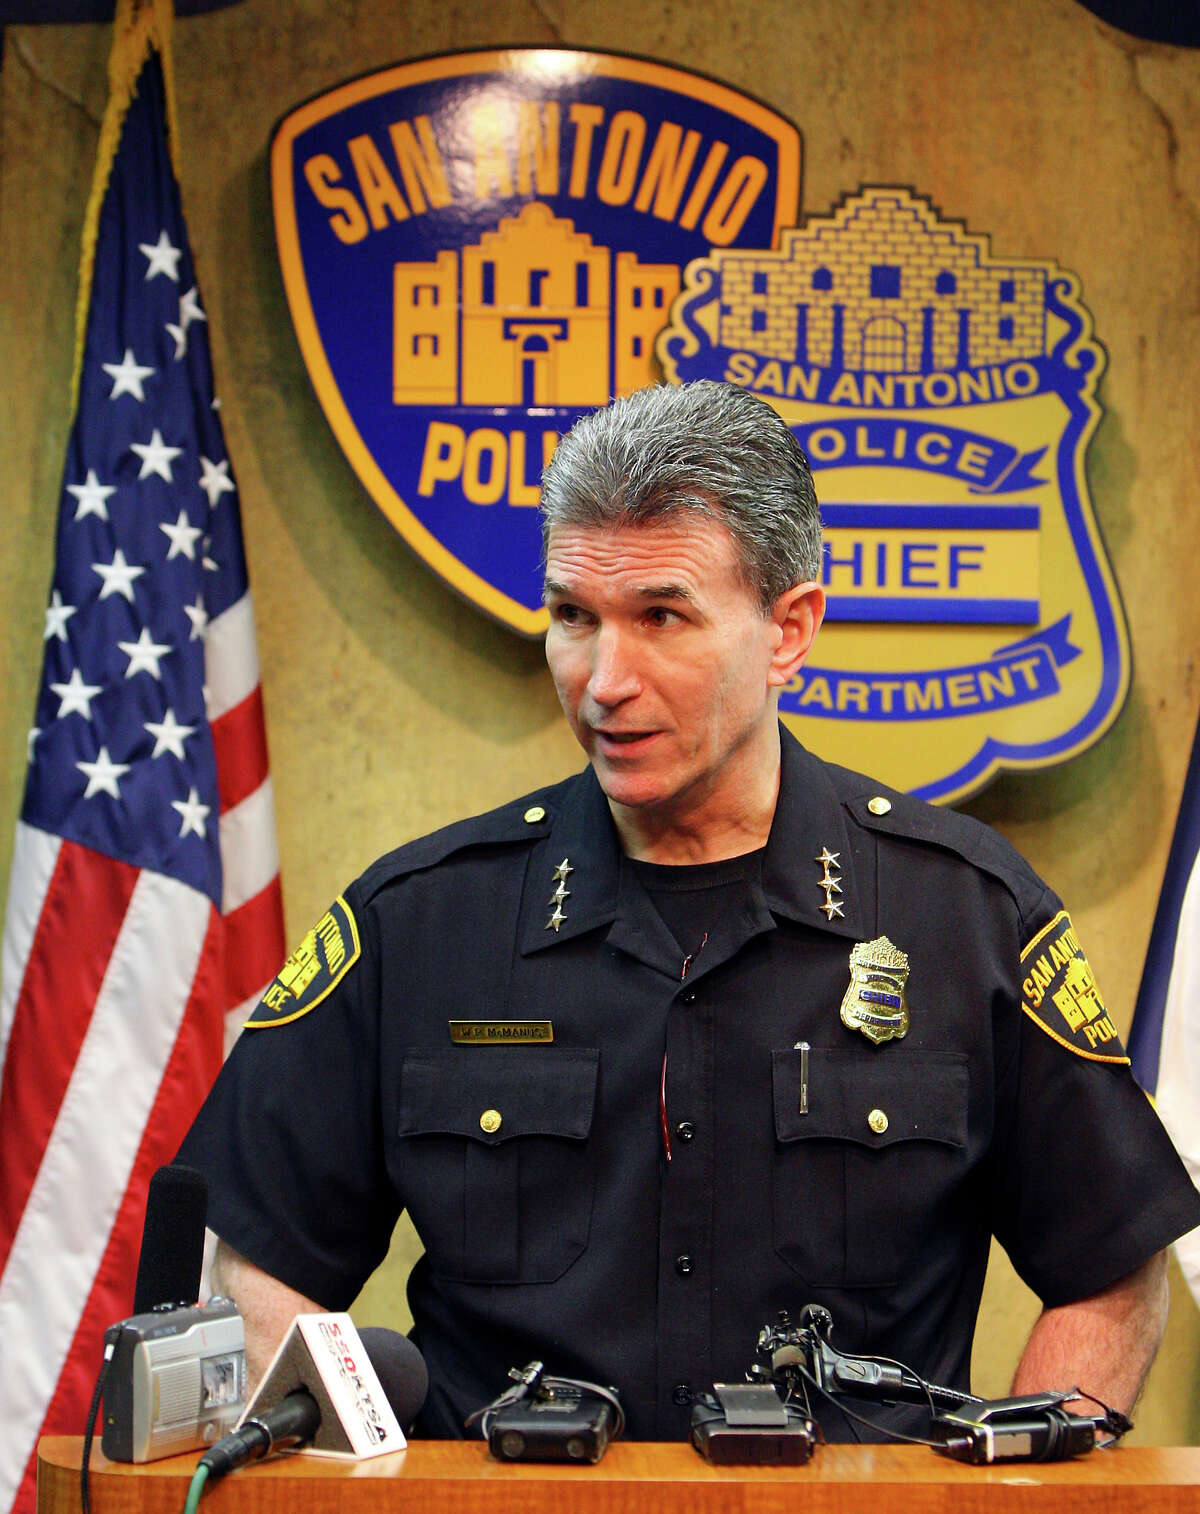 San Antonio Police Chief William McManus answers questions during a press conference on March 12, 2010 at SAPD headquarters.